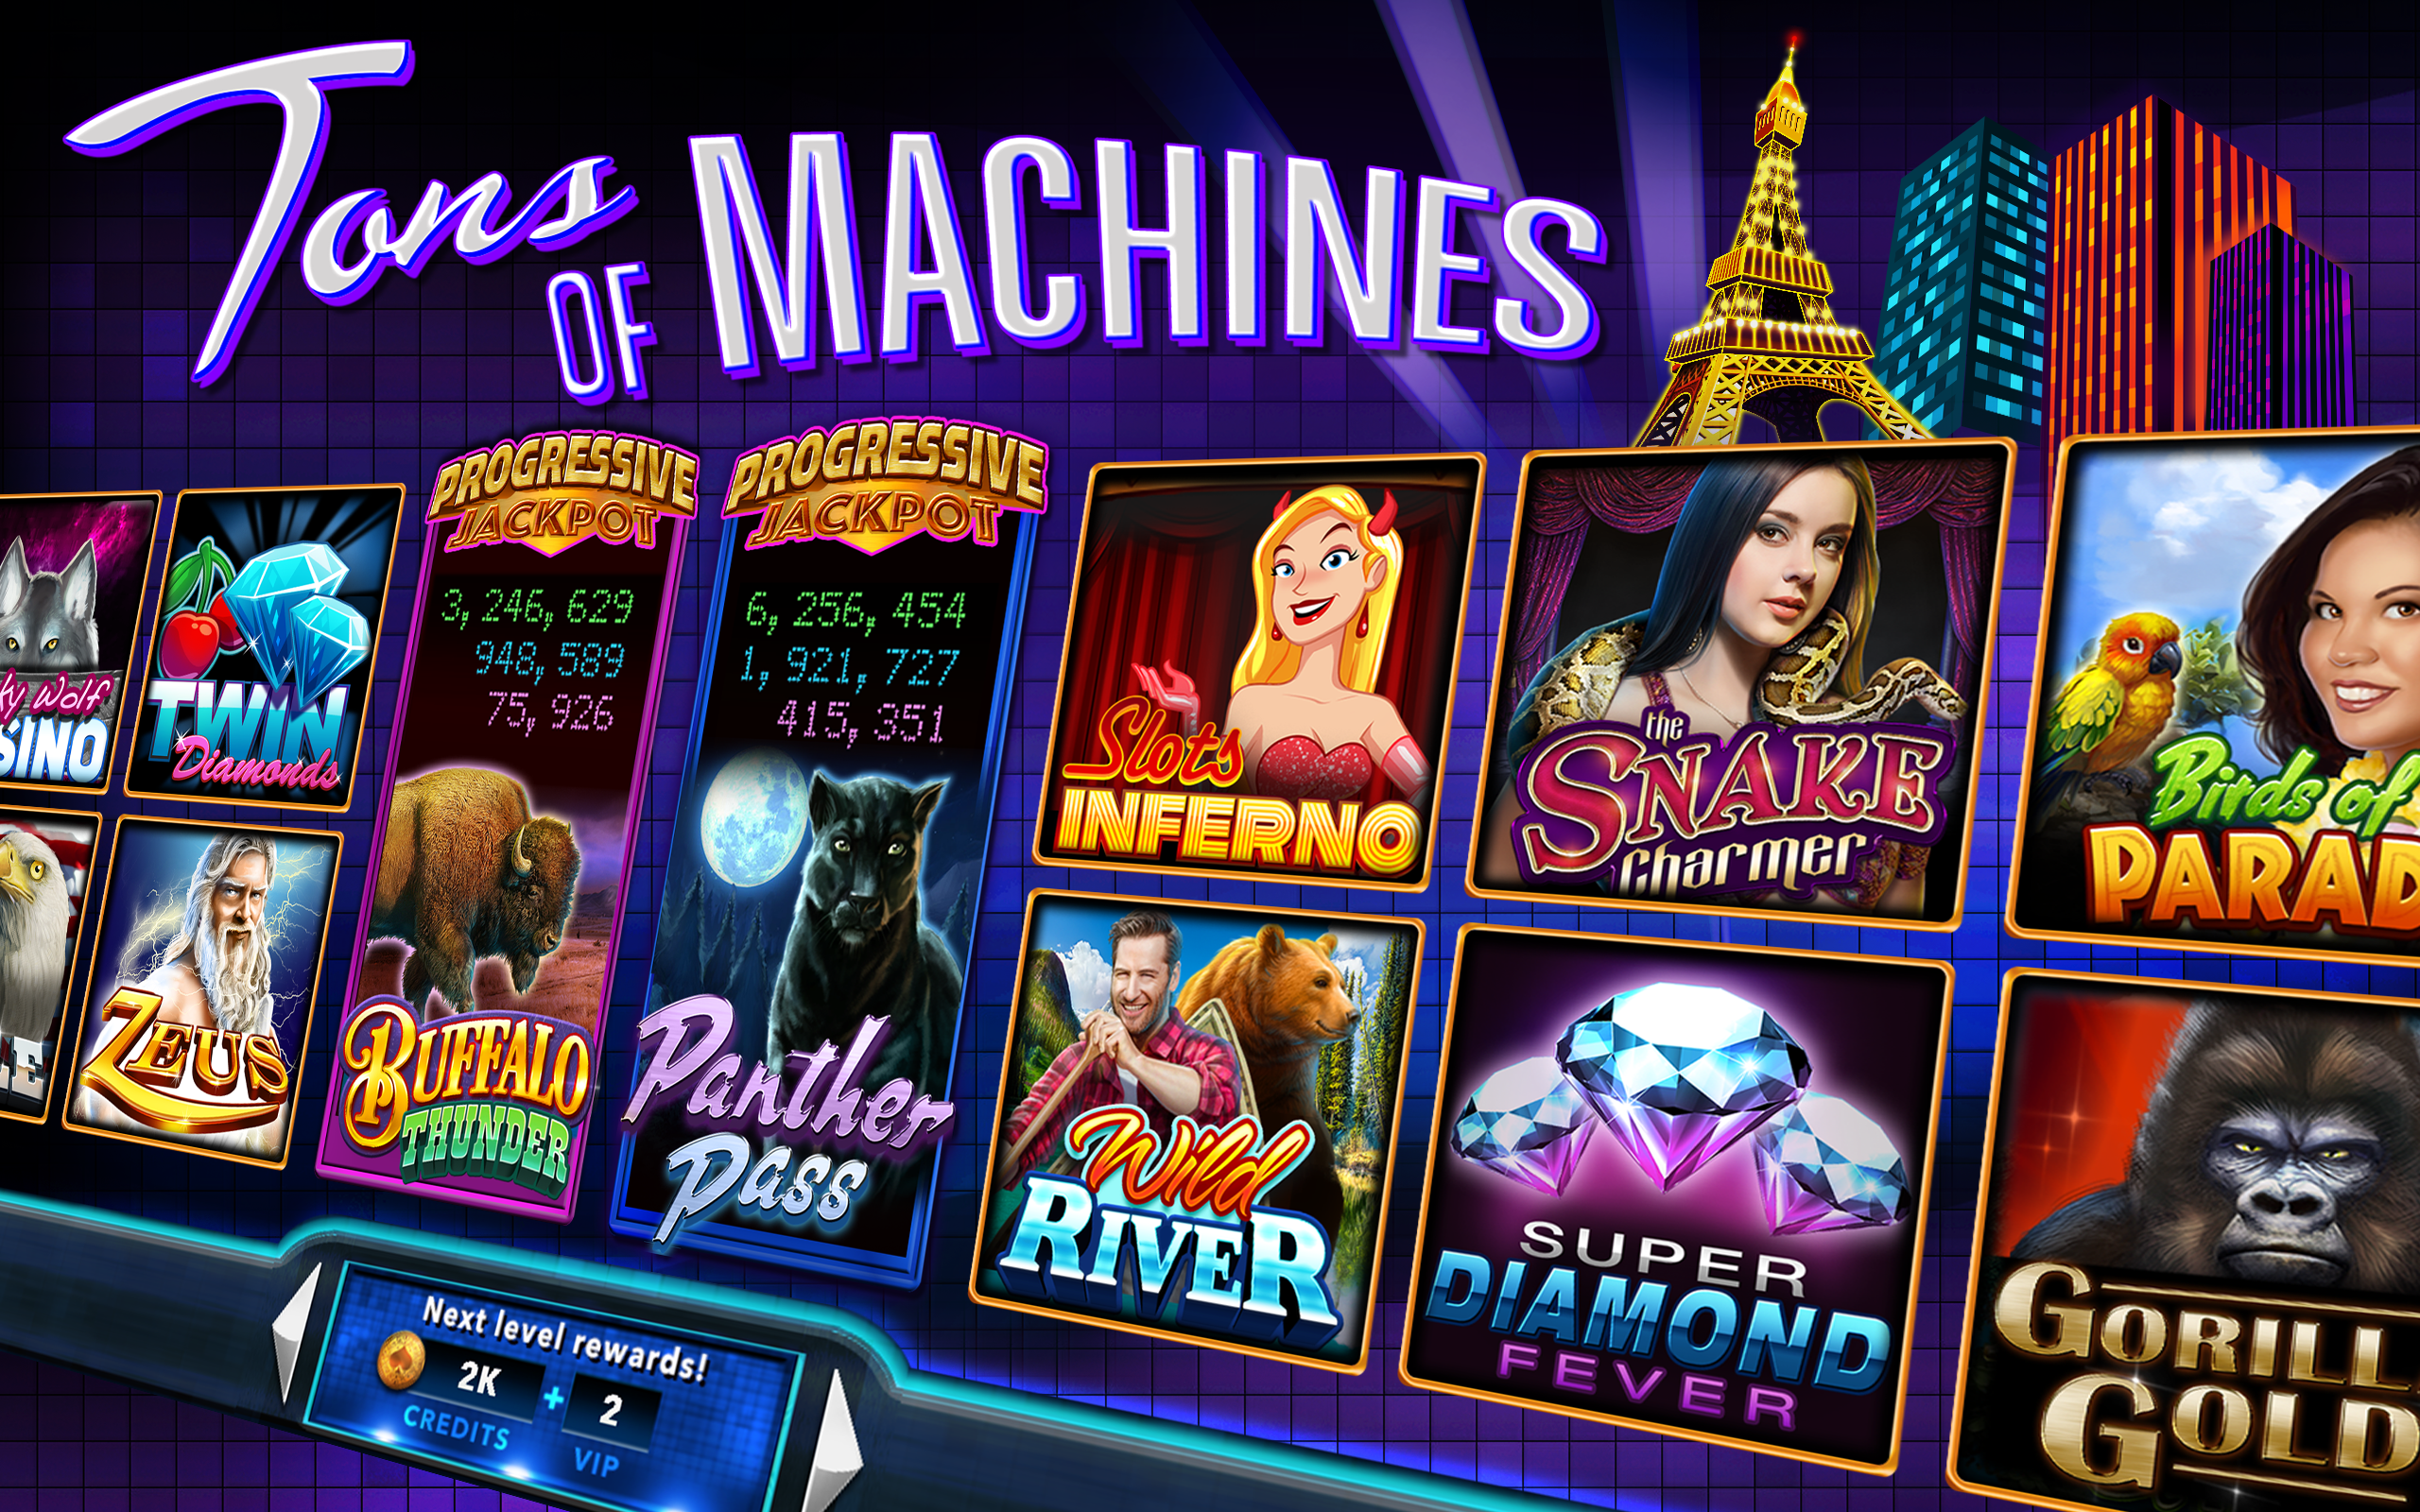 Vegas slot casino promotion code